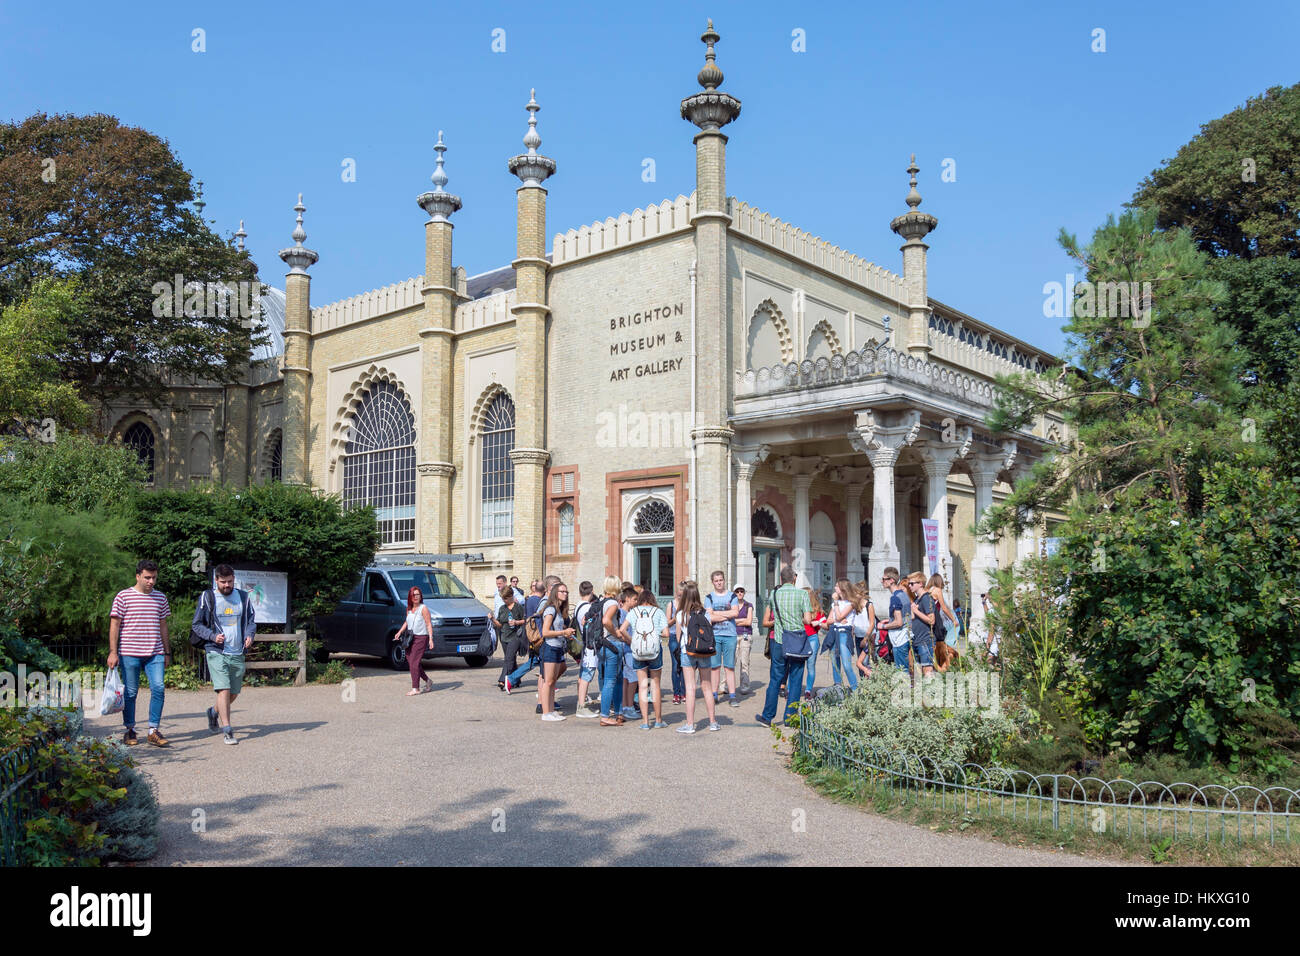 School group at Brighton Museum & Art Gallery, Royal Pavilion Gardens, Brighton, East Sussex, England, United - Stock Image